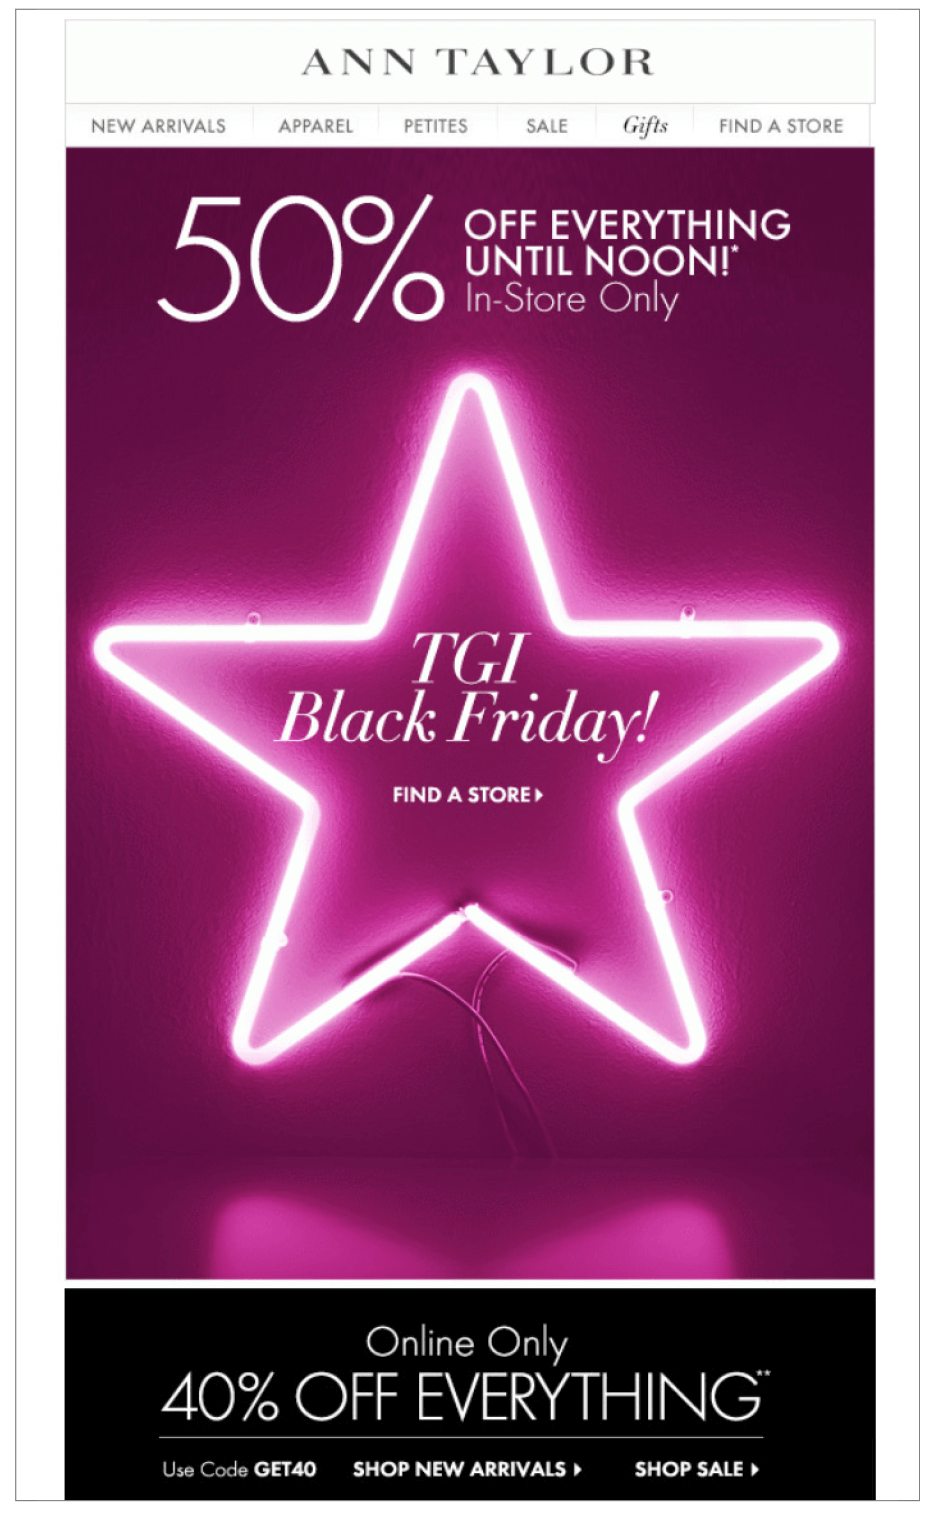 For inspiration, check out this Black Friday 2013 email promotion from Ann Taylor: